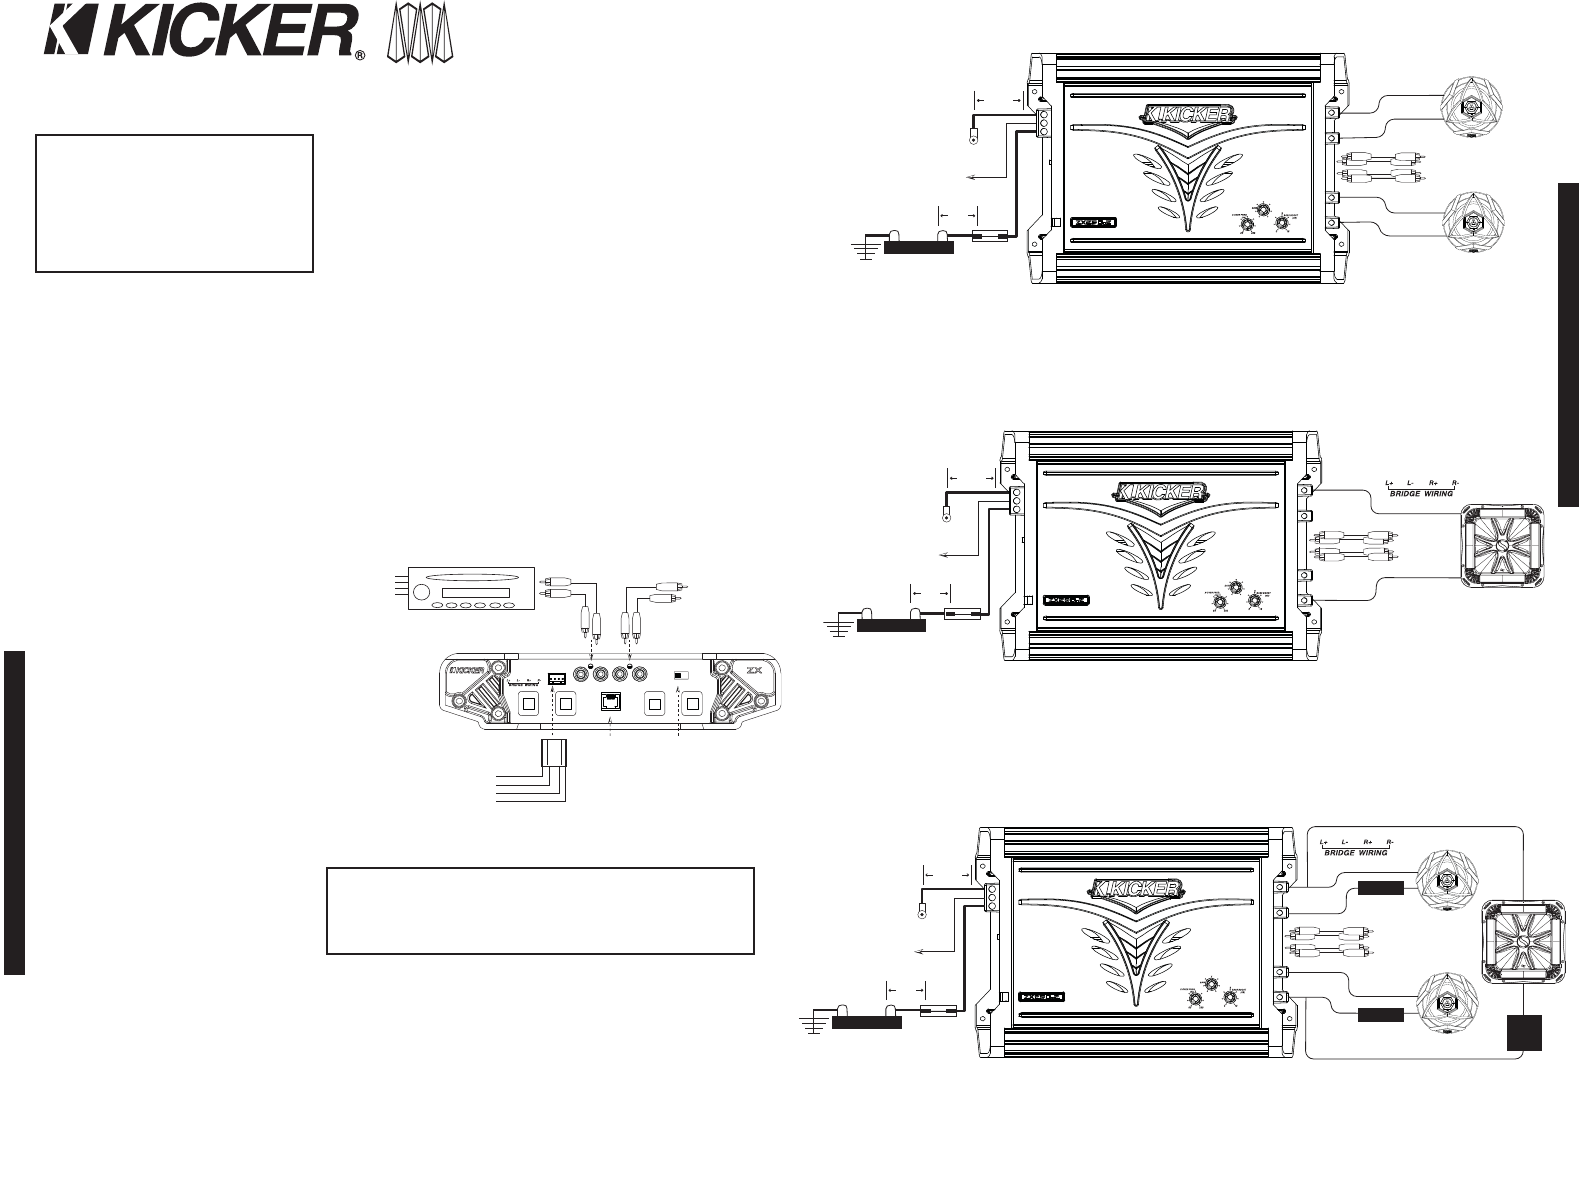 Kicker Dxa250.1 Wiring Diagram